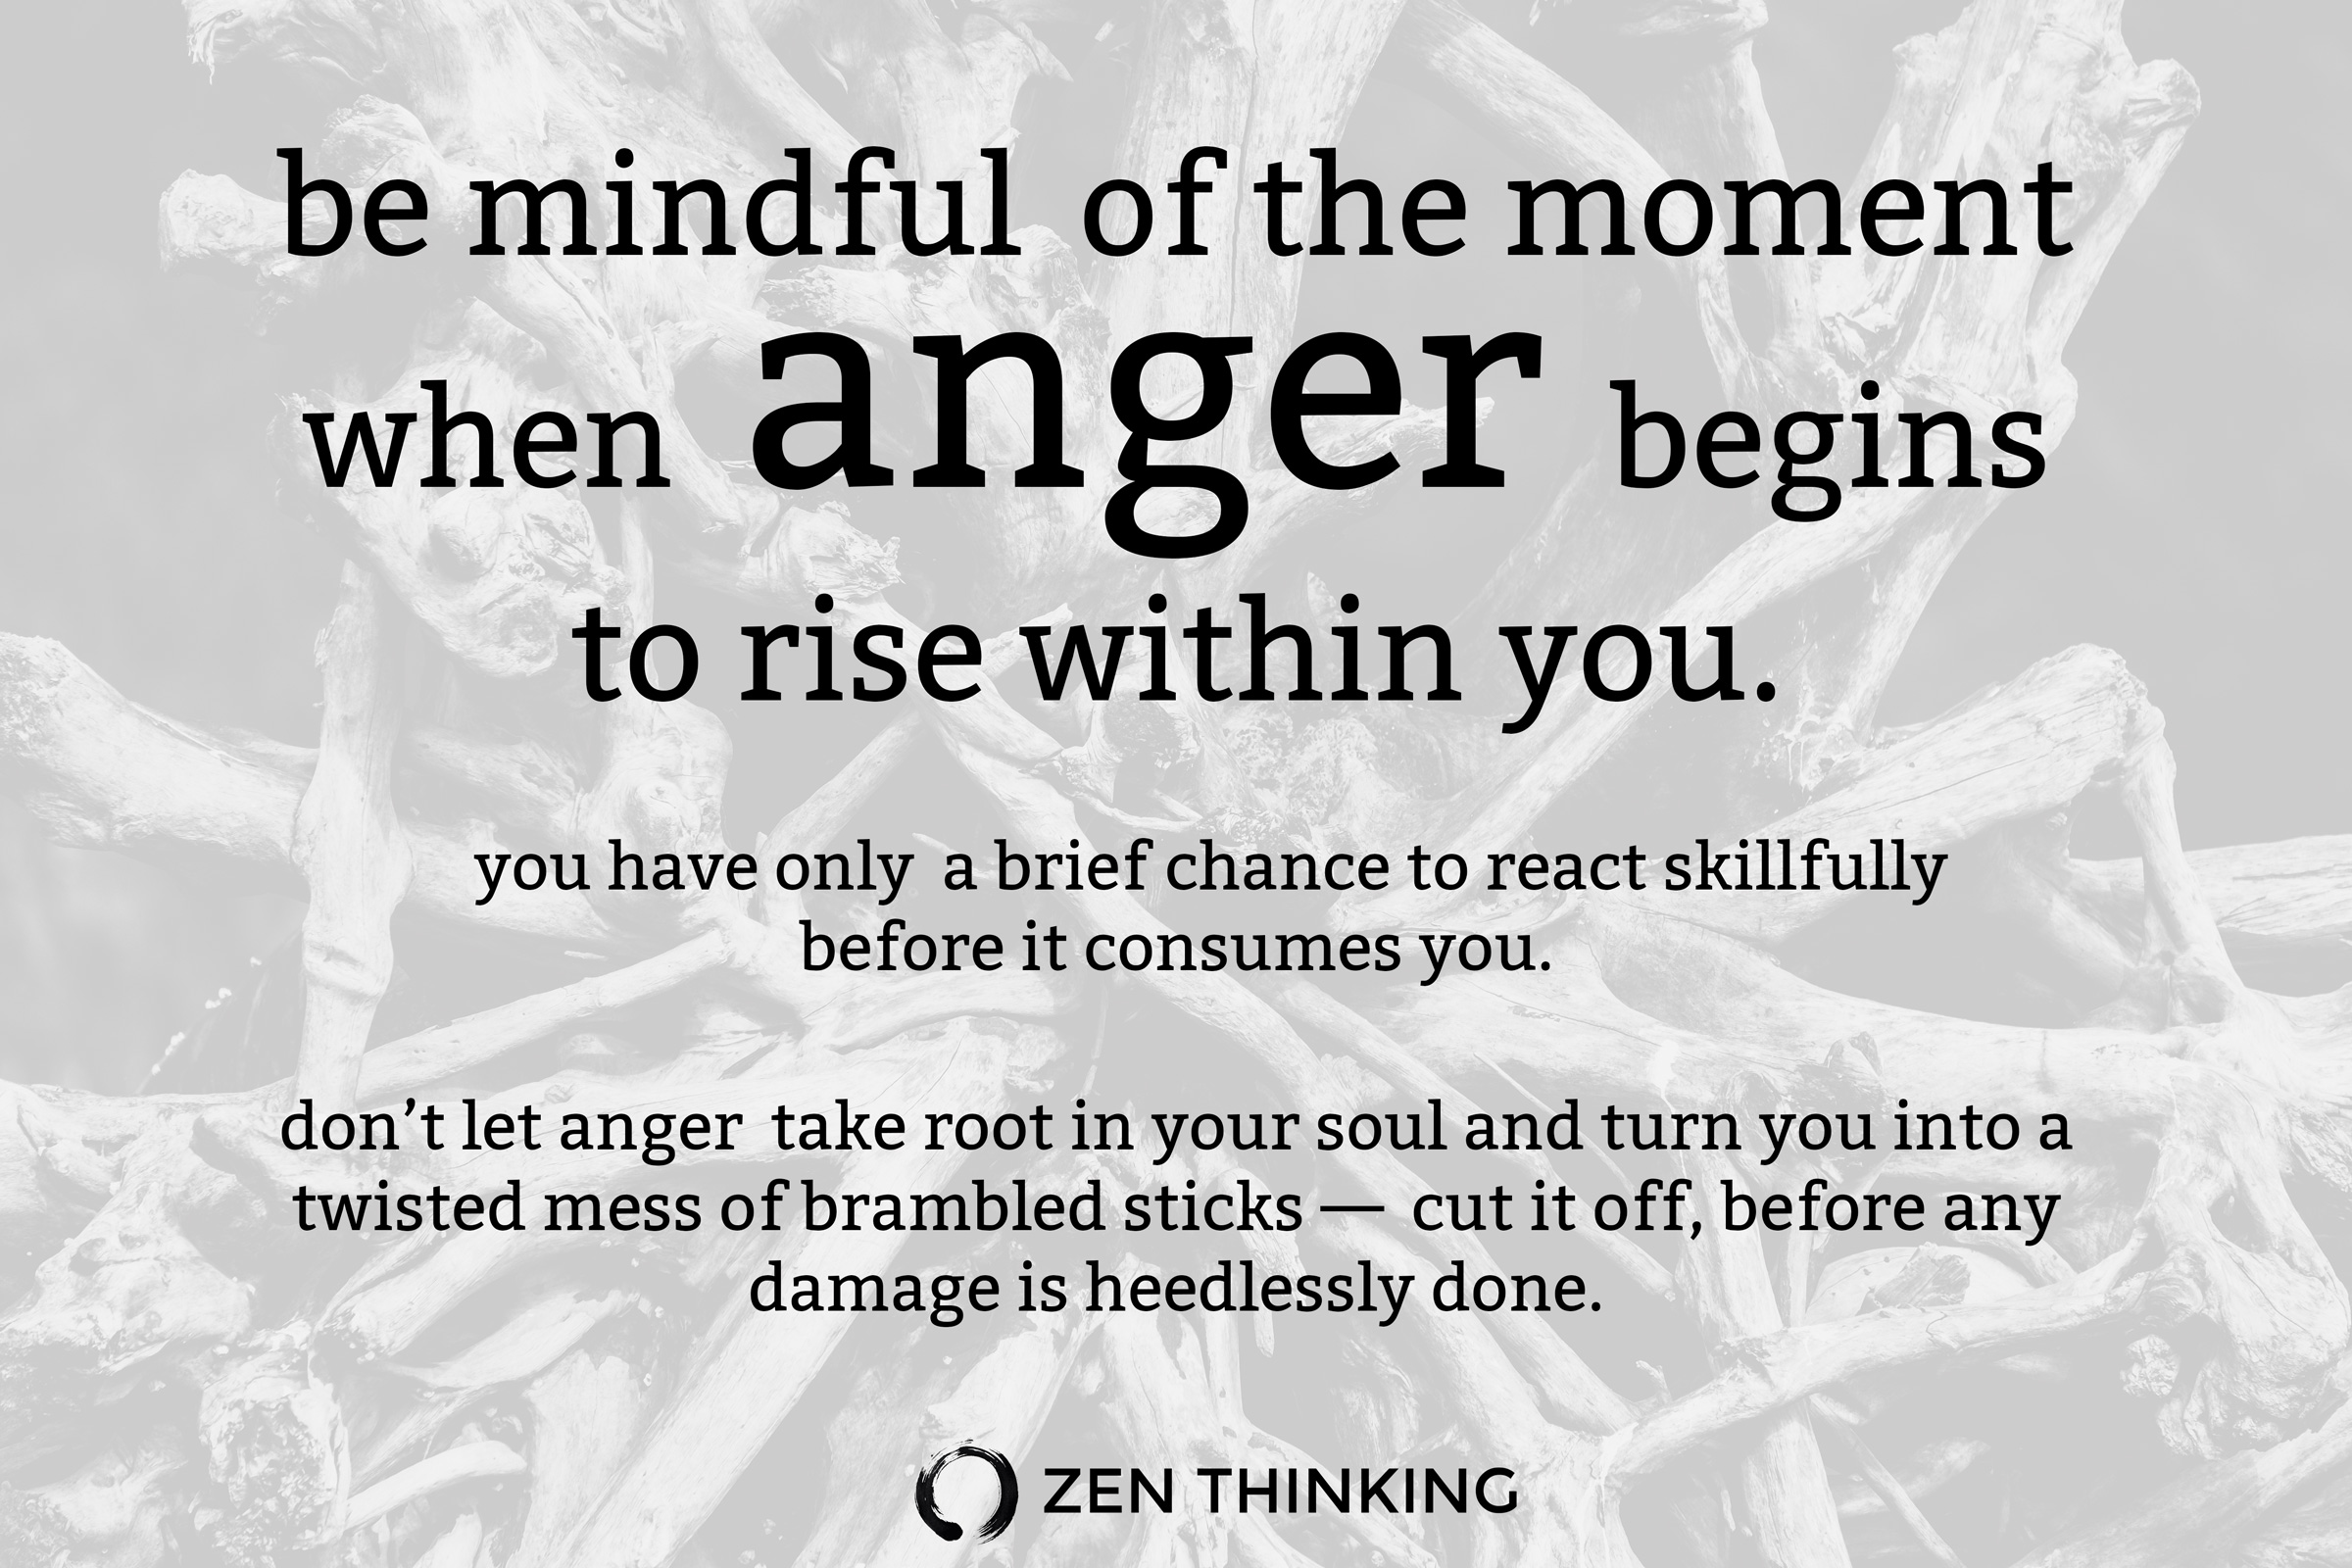 be mindful of the moment when anger begins to rise within you - Zen Thinking